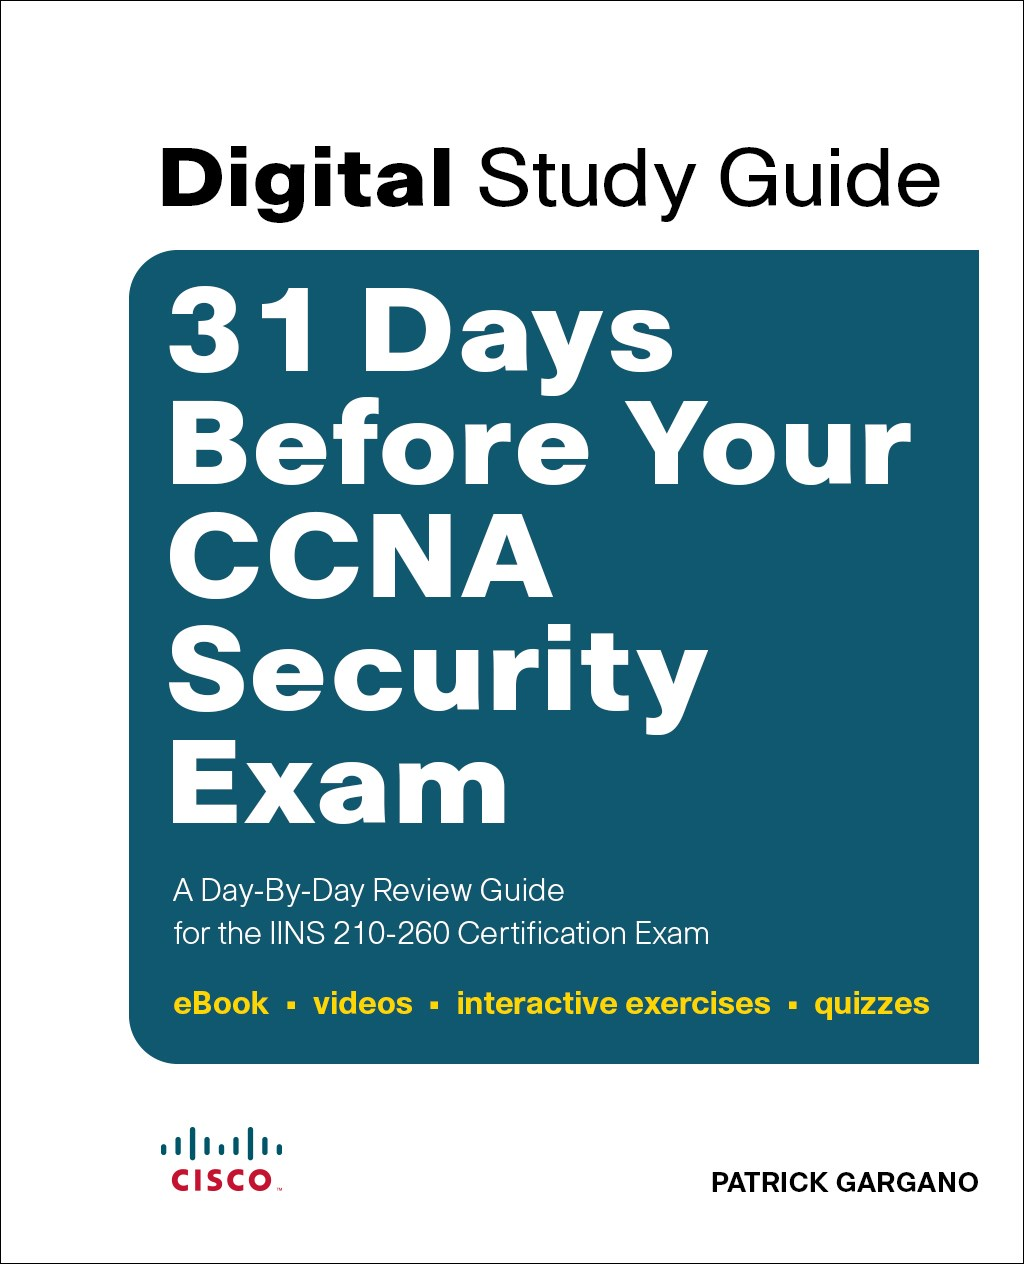 31 Days Before Your CCNA Security Exam (Digital Study Guide